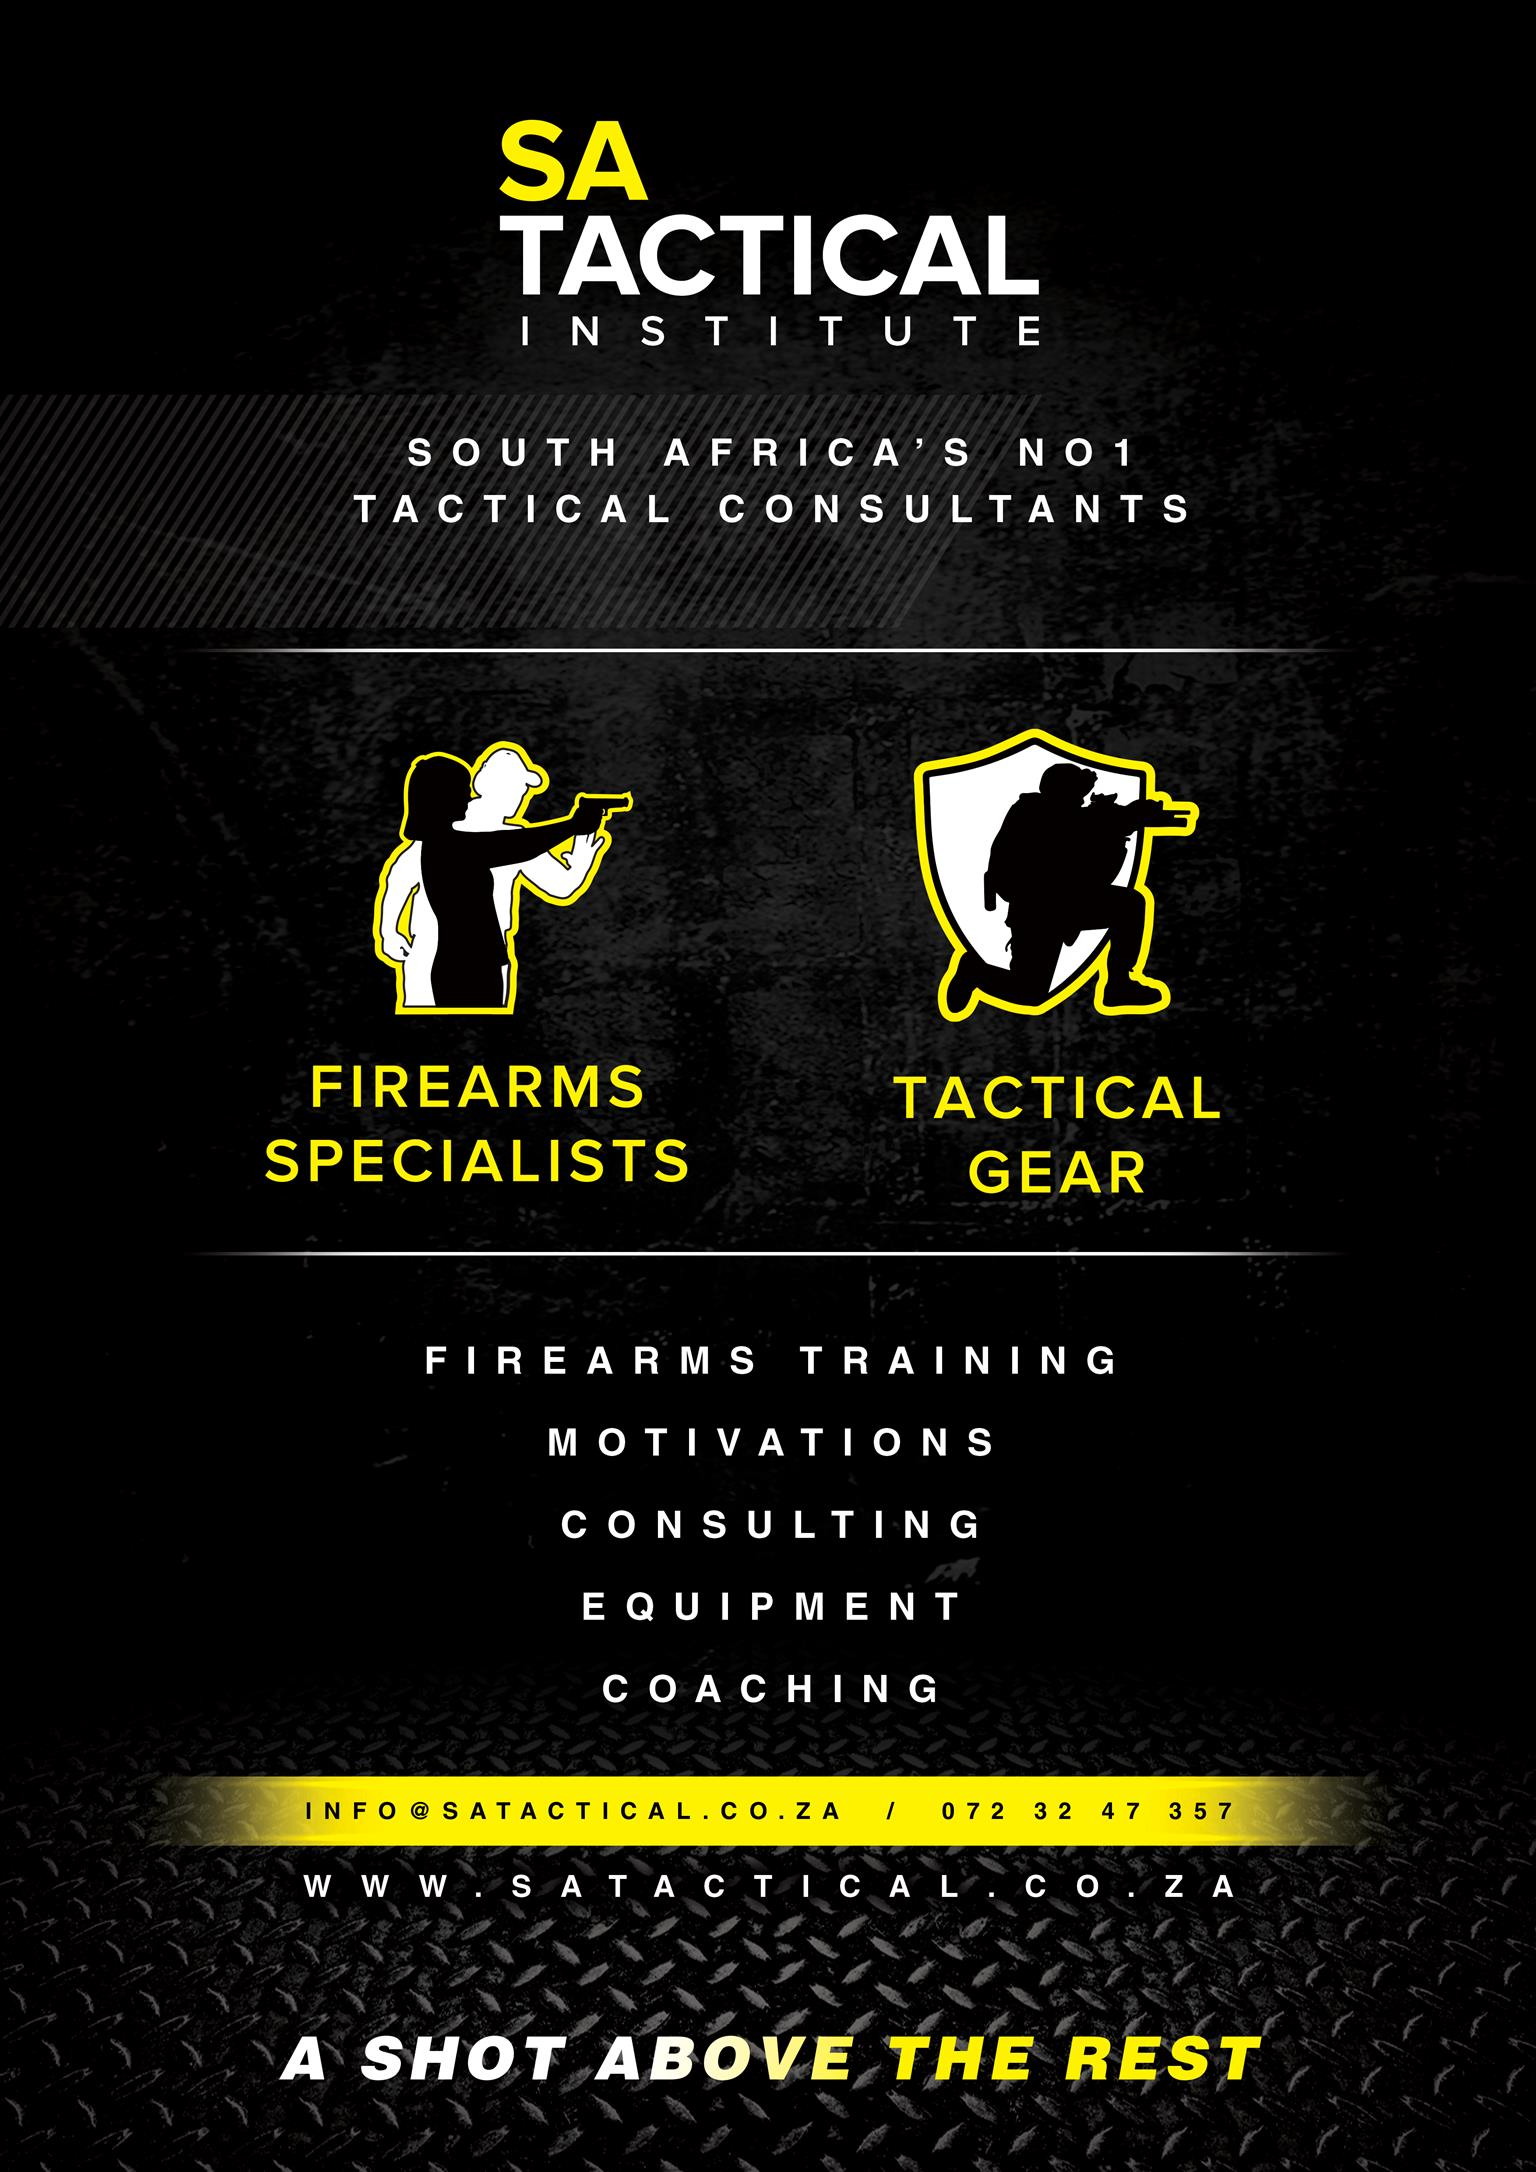 FIREARM CONSULTANTS - SA TACTICAL INSTITUTE